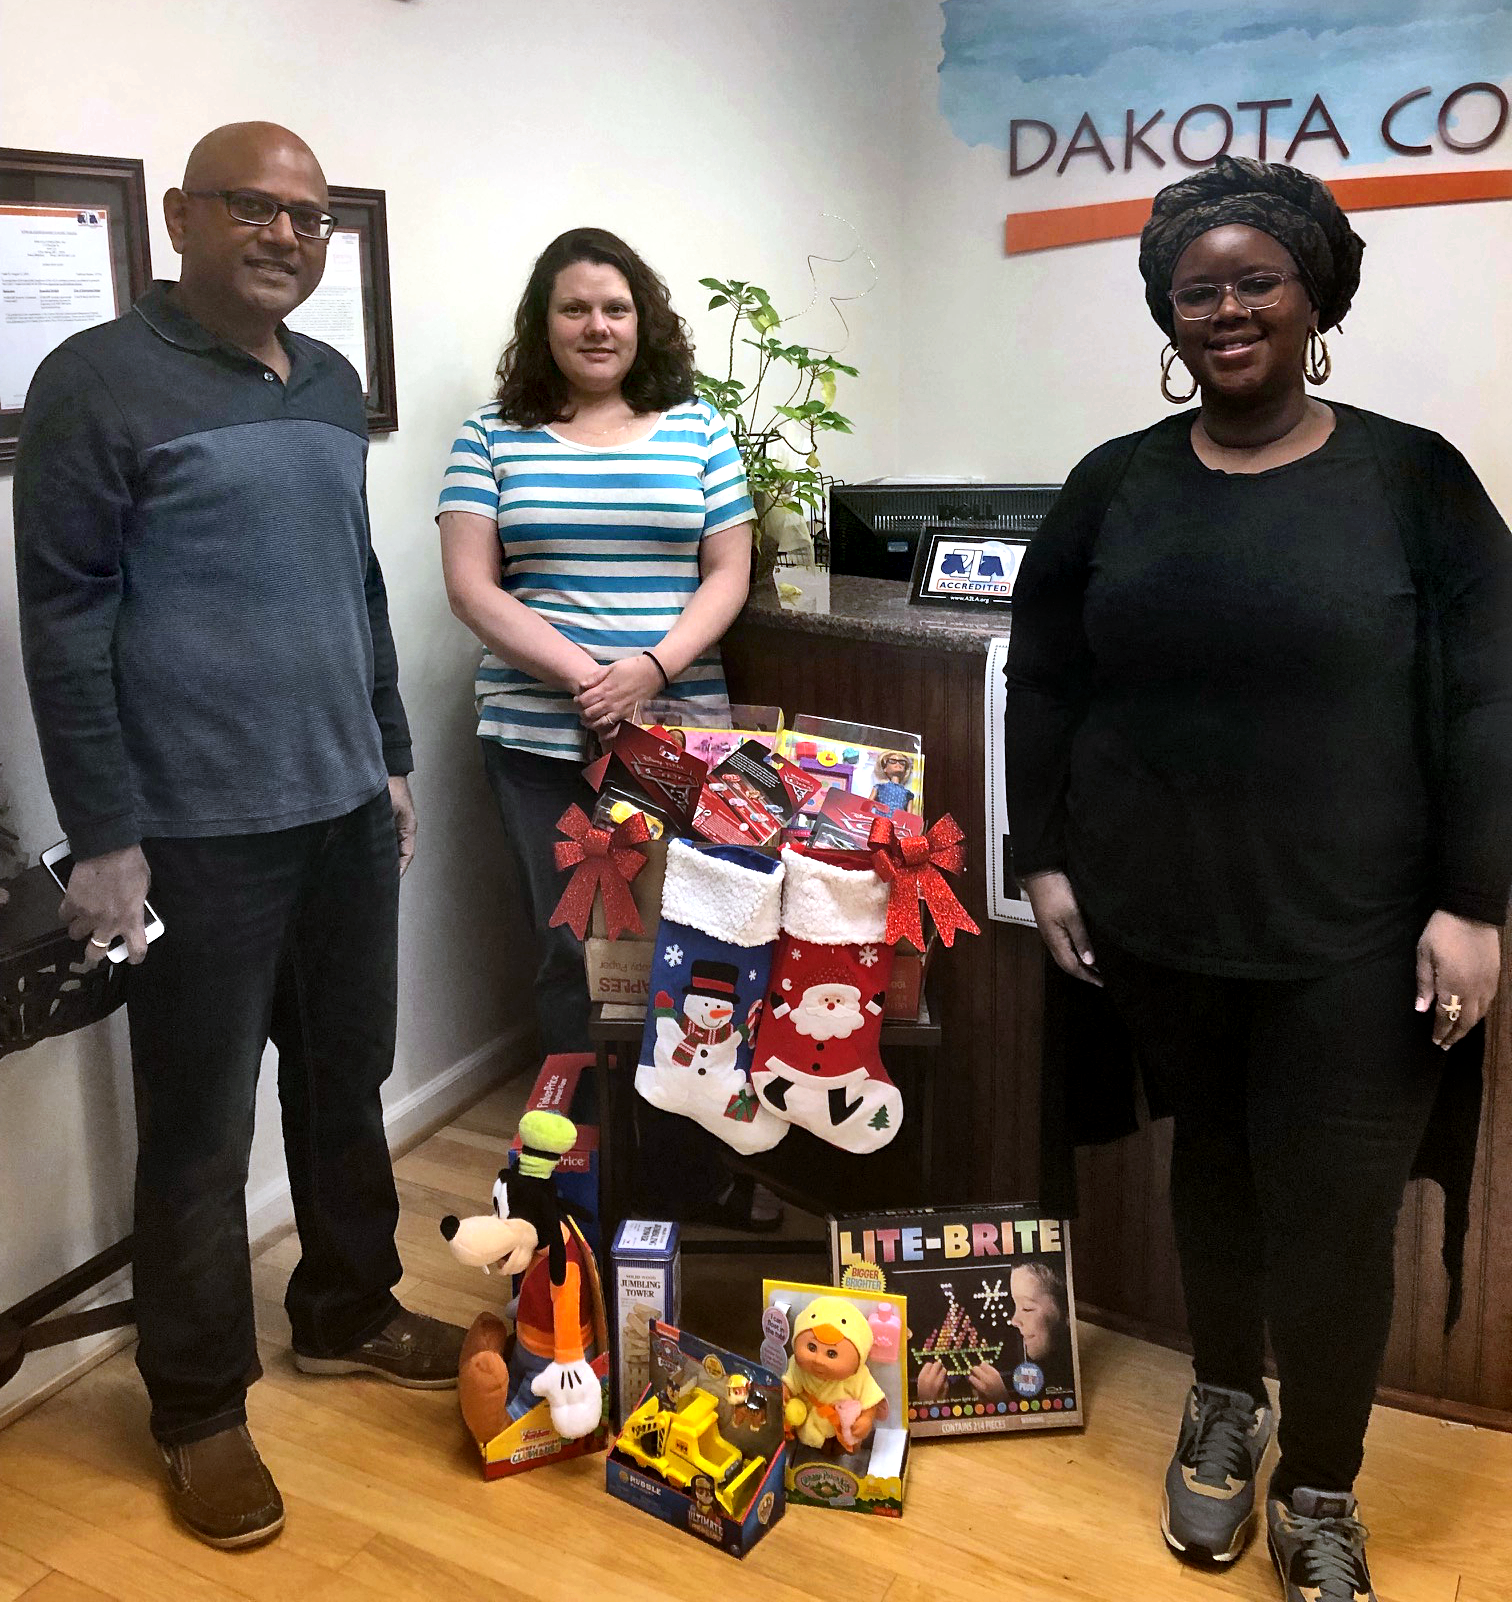 Dakota Employees with collected toys